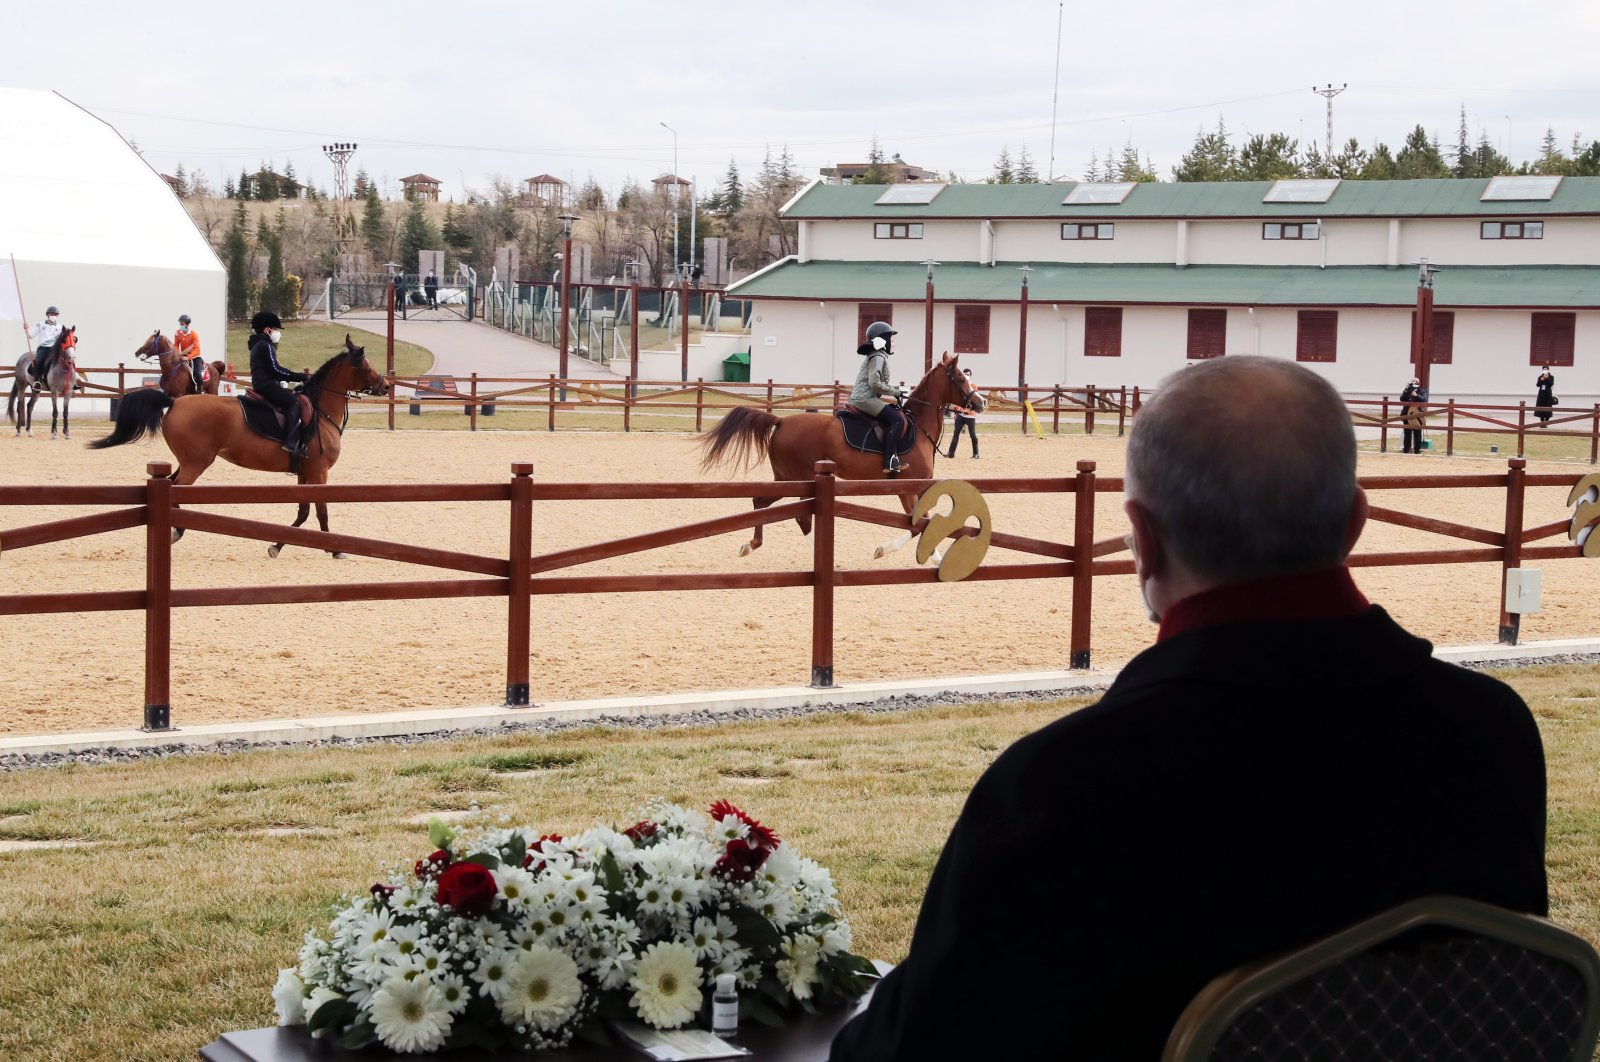 President Recep Tayyip Erdoğan watches riders at the facility, in the capital Ankara, Turkey, Jan. 12, 2021. (AA PHOTO)